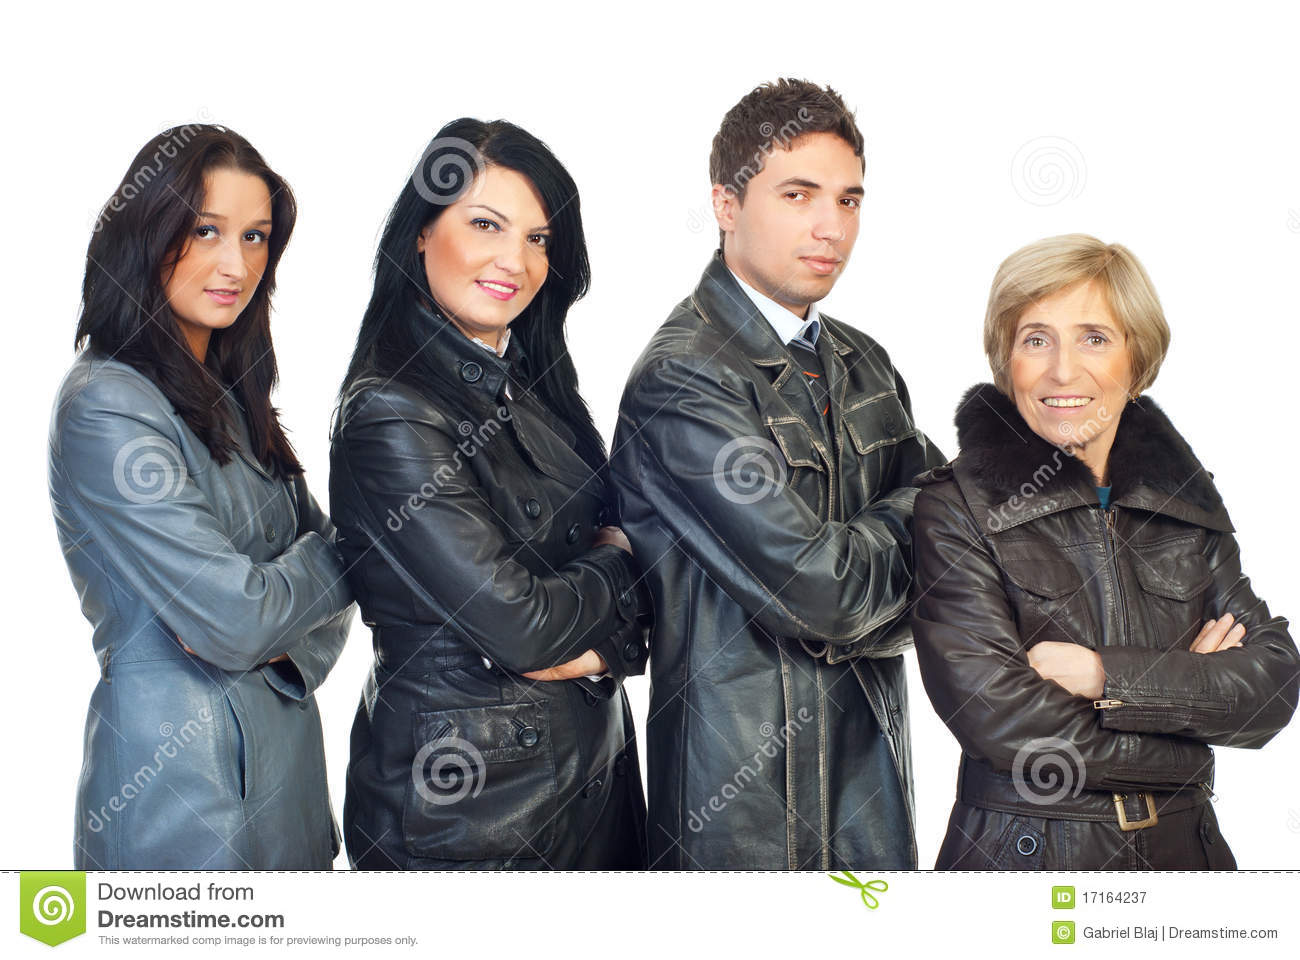 four wearing leather jackets different hats hard colors models uniforms background crossed alamy royalty young preview semi standing hands profile